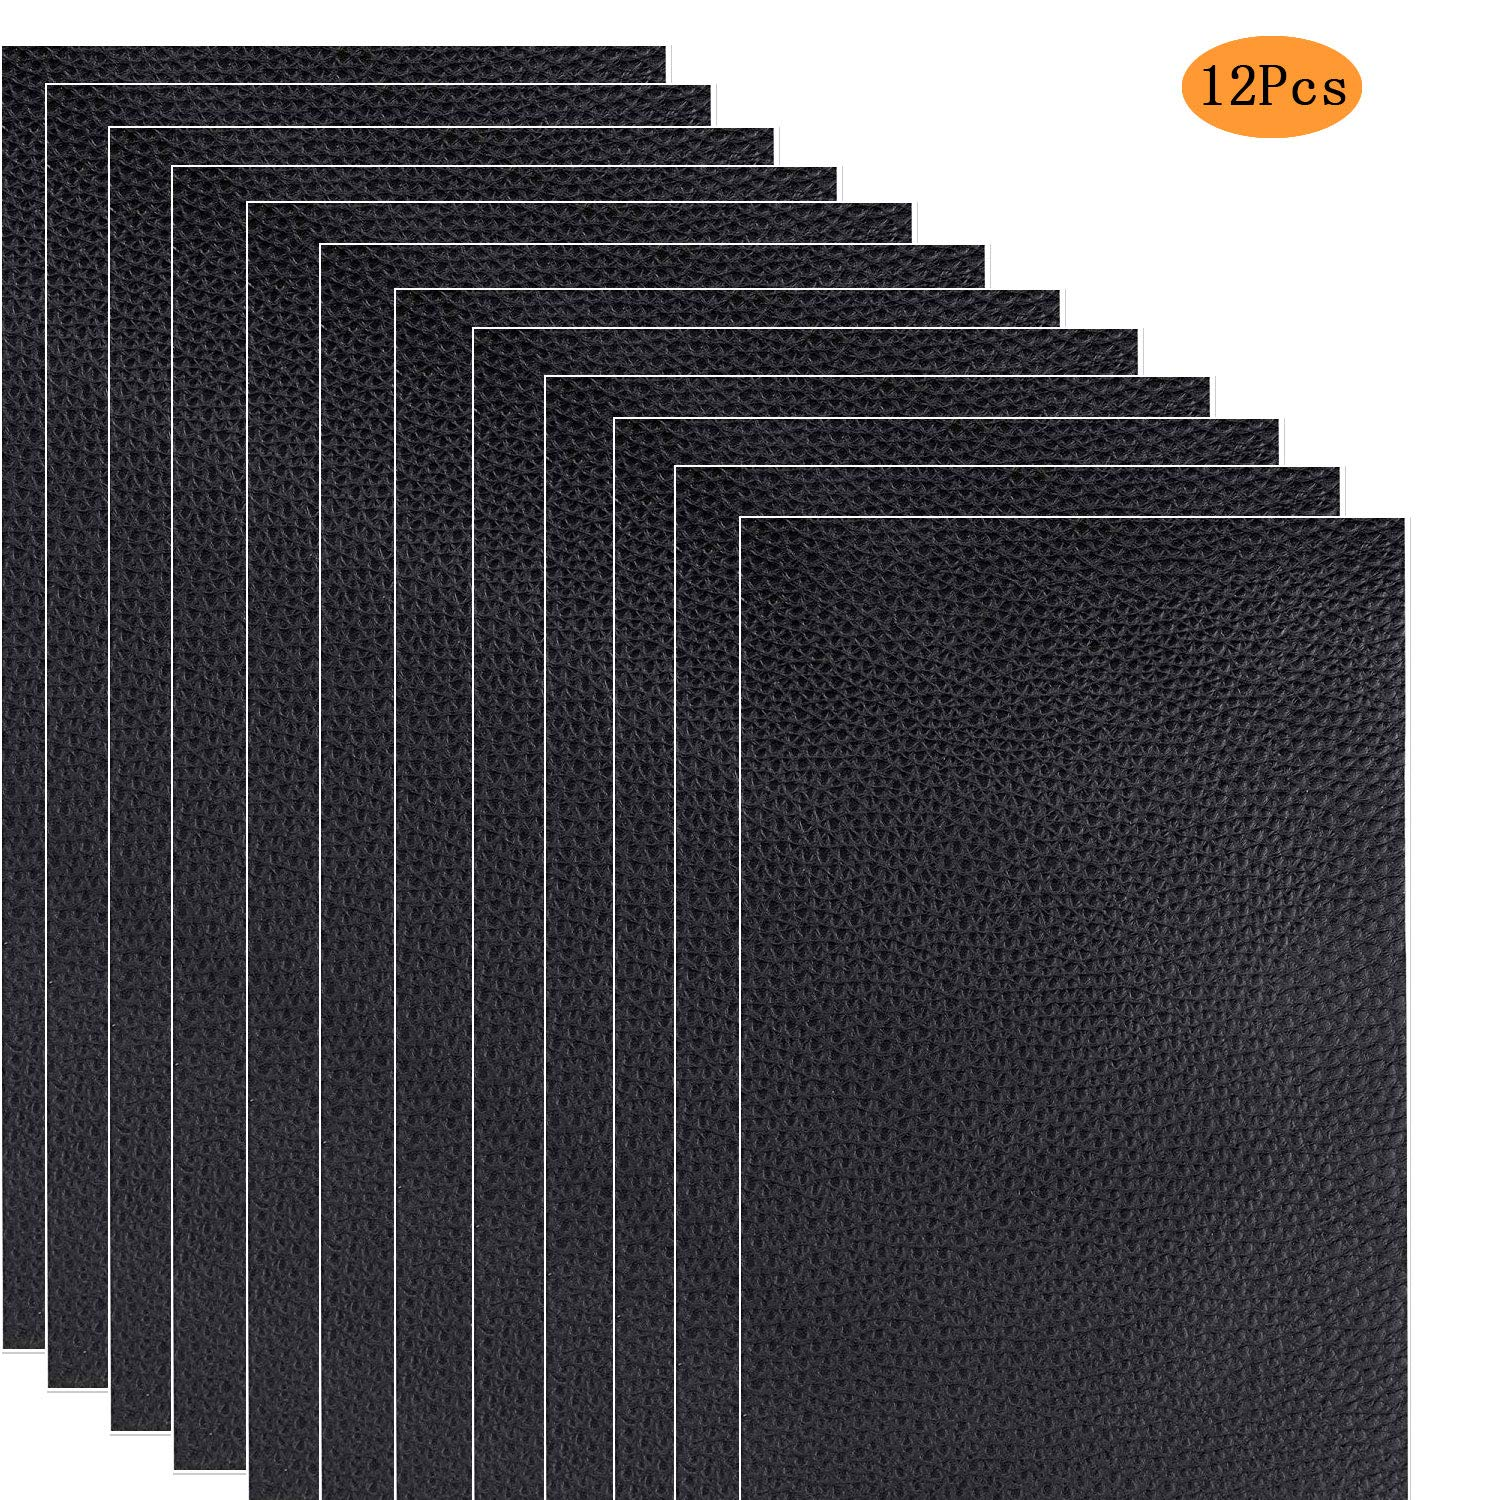 12 Pieces Leather Repair Patch Adhesive Backing Leather Seat Patch First Aid for Couch Furniture Sofas Car Seats Handbags Jackets, 10 x 20 cm (Black) Netrox